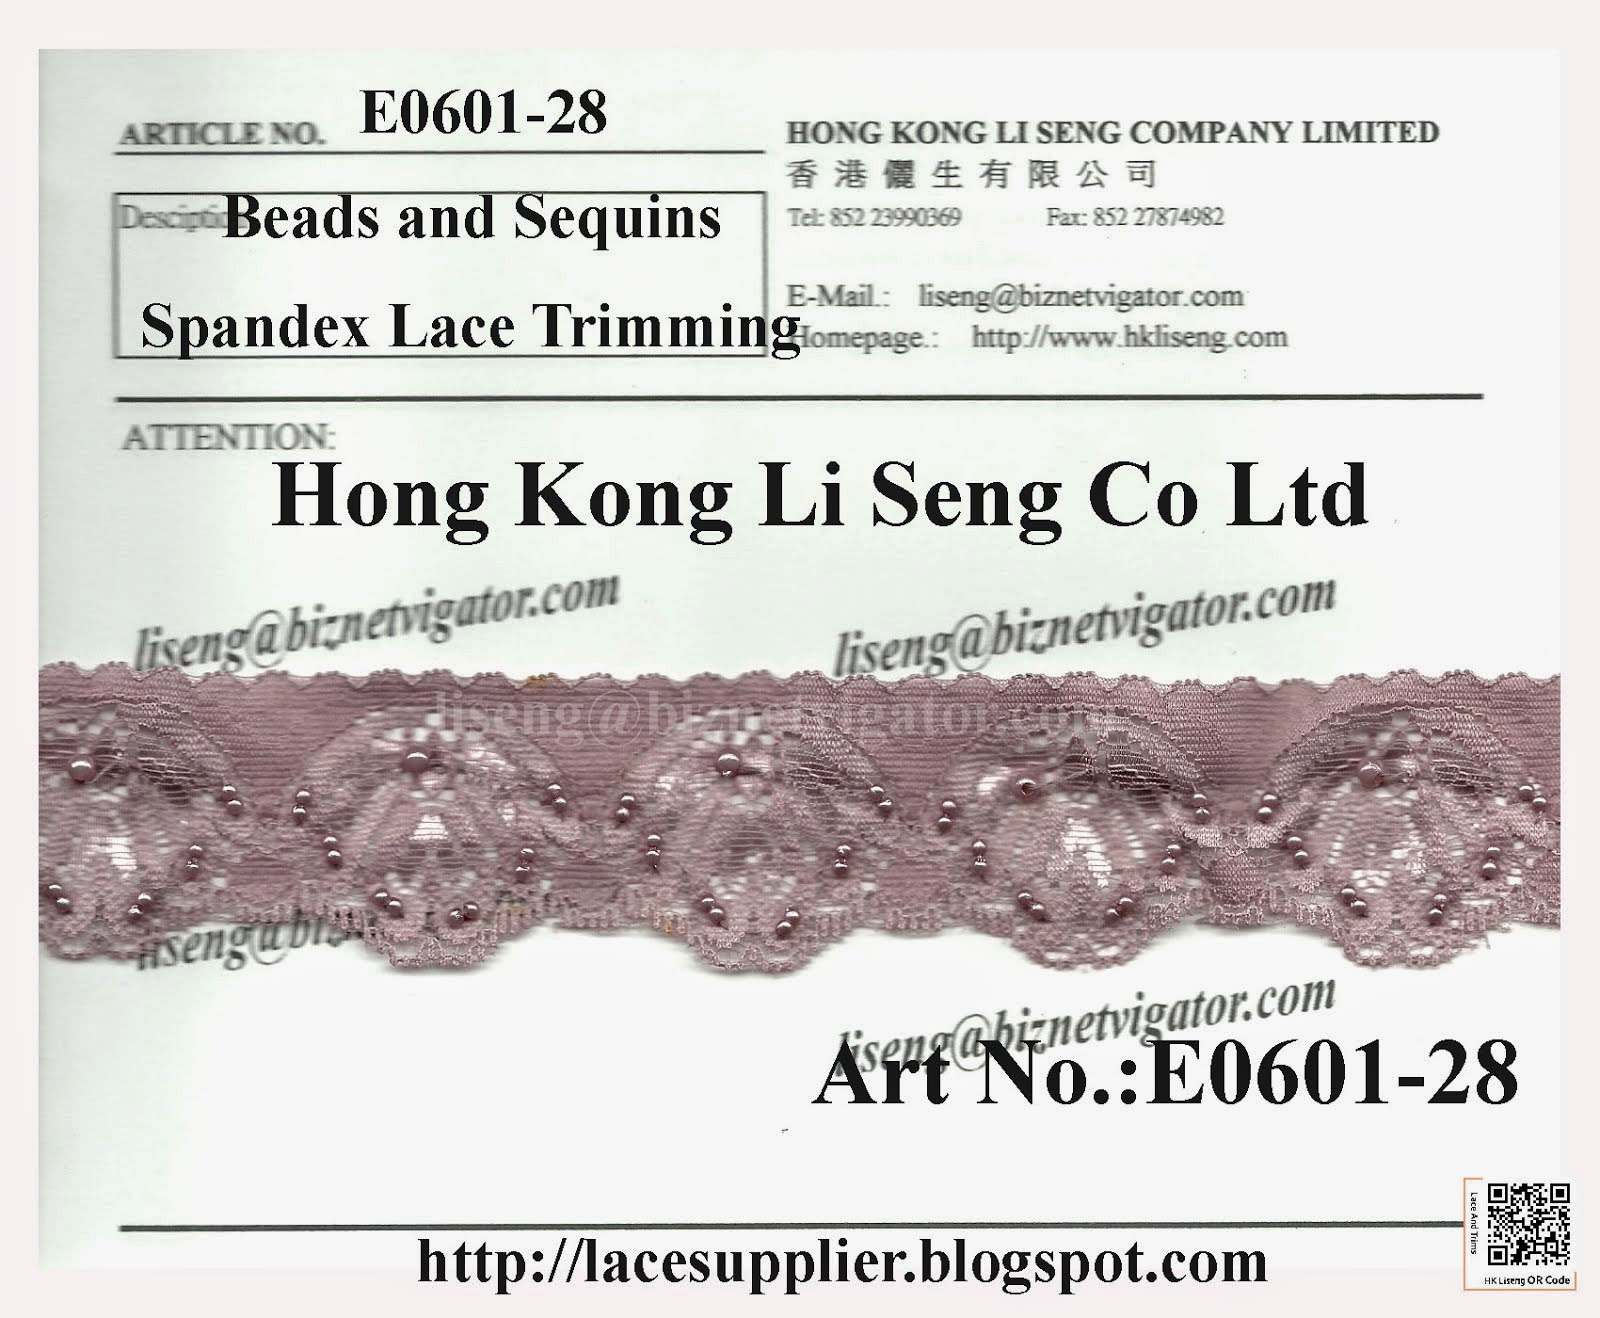 Spandex Lace Trimming with Beads and Sequins Manufacturer Wholesaler and Supplier